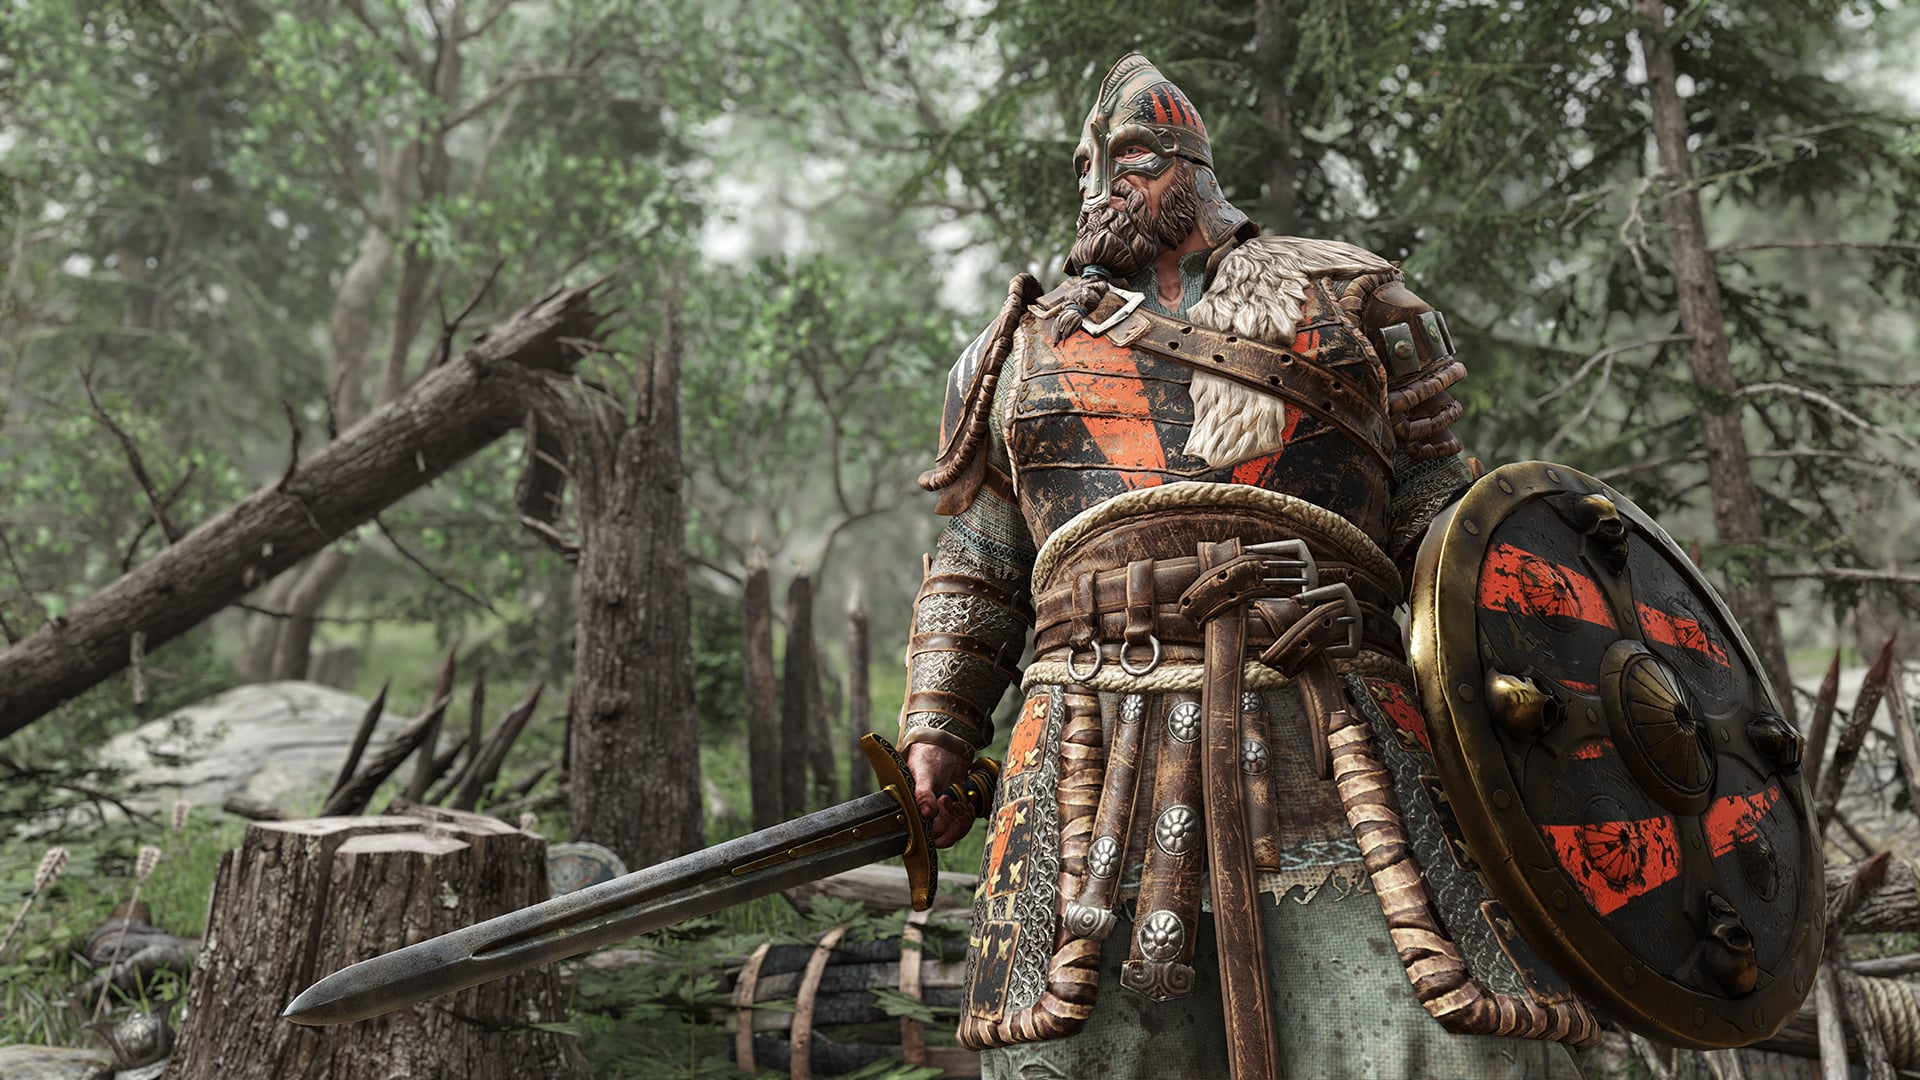 14 For Honor 2015 Wallpapers Hd Download